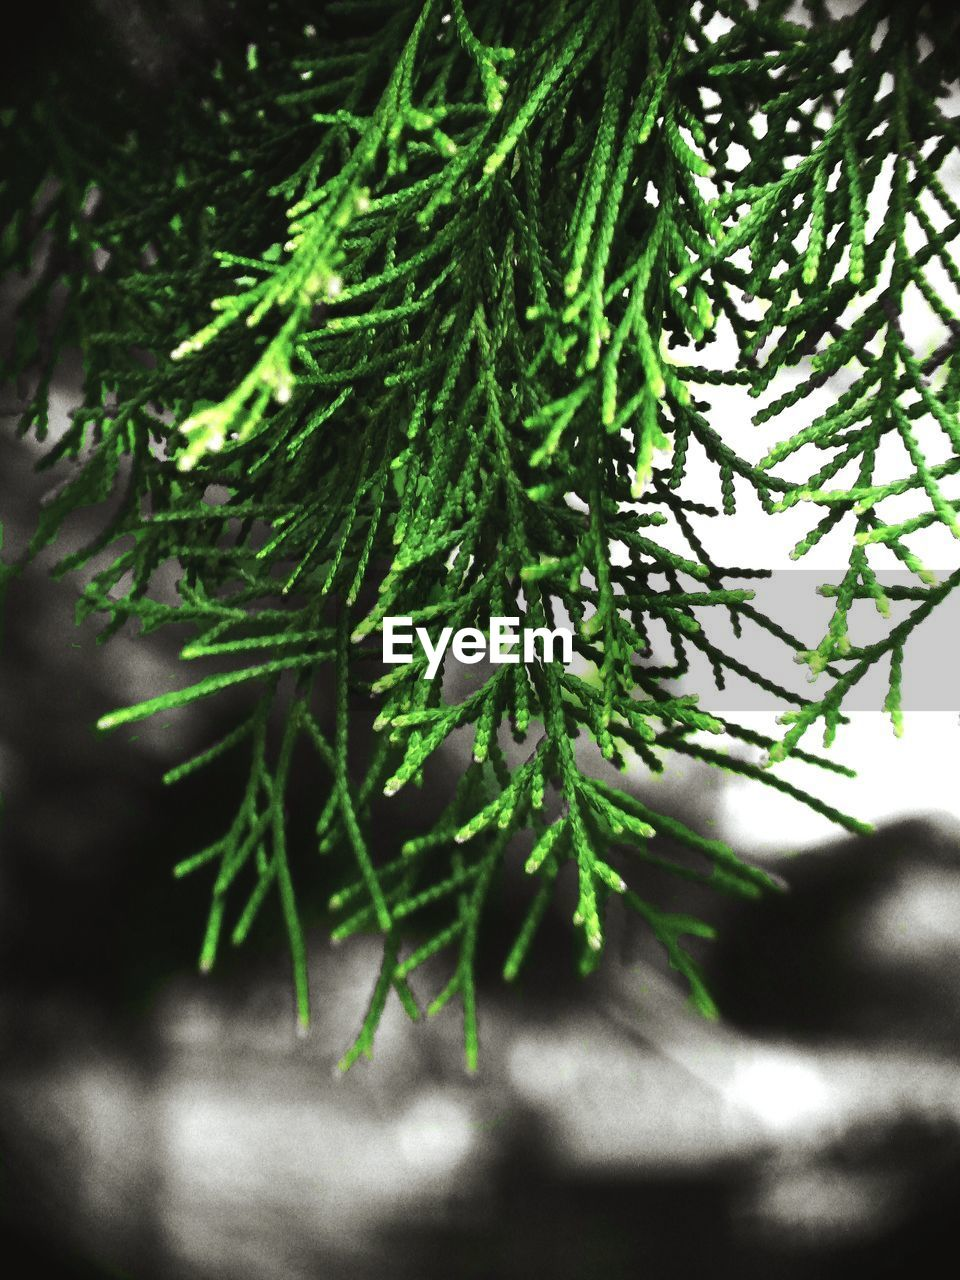 plant, green color, growth, selective focus, leaf, plant part, close-up, nature, beauty in nature, no people, day, tree, branch, outdoors, tranquility, pine tree, coniferous tree, freshness, needle - plant part, sunlight, fir tree